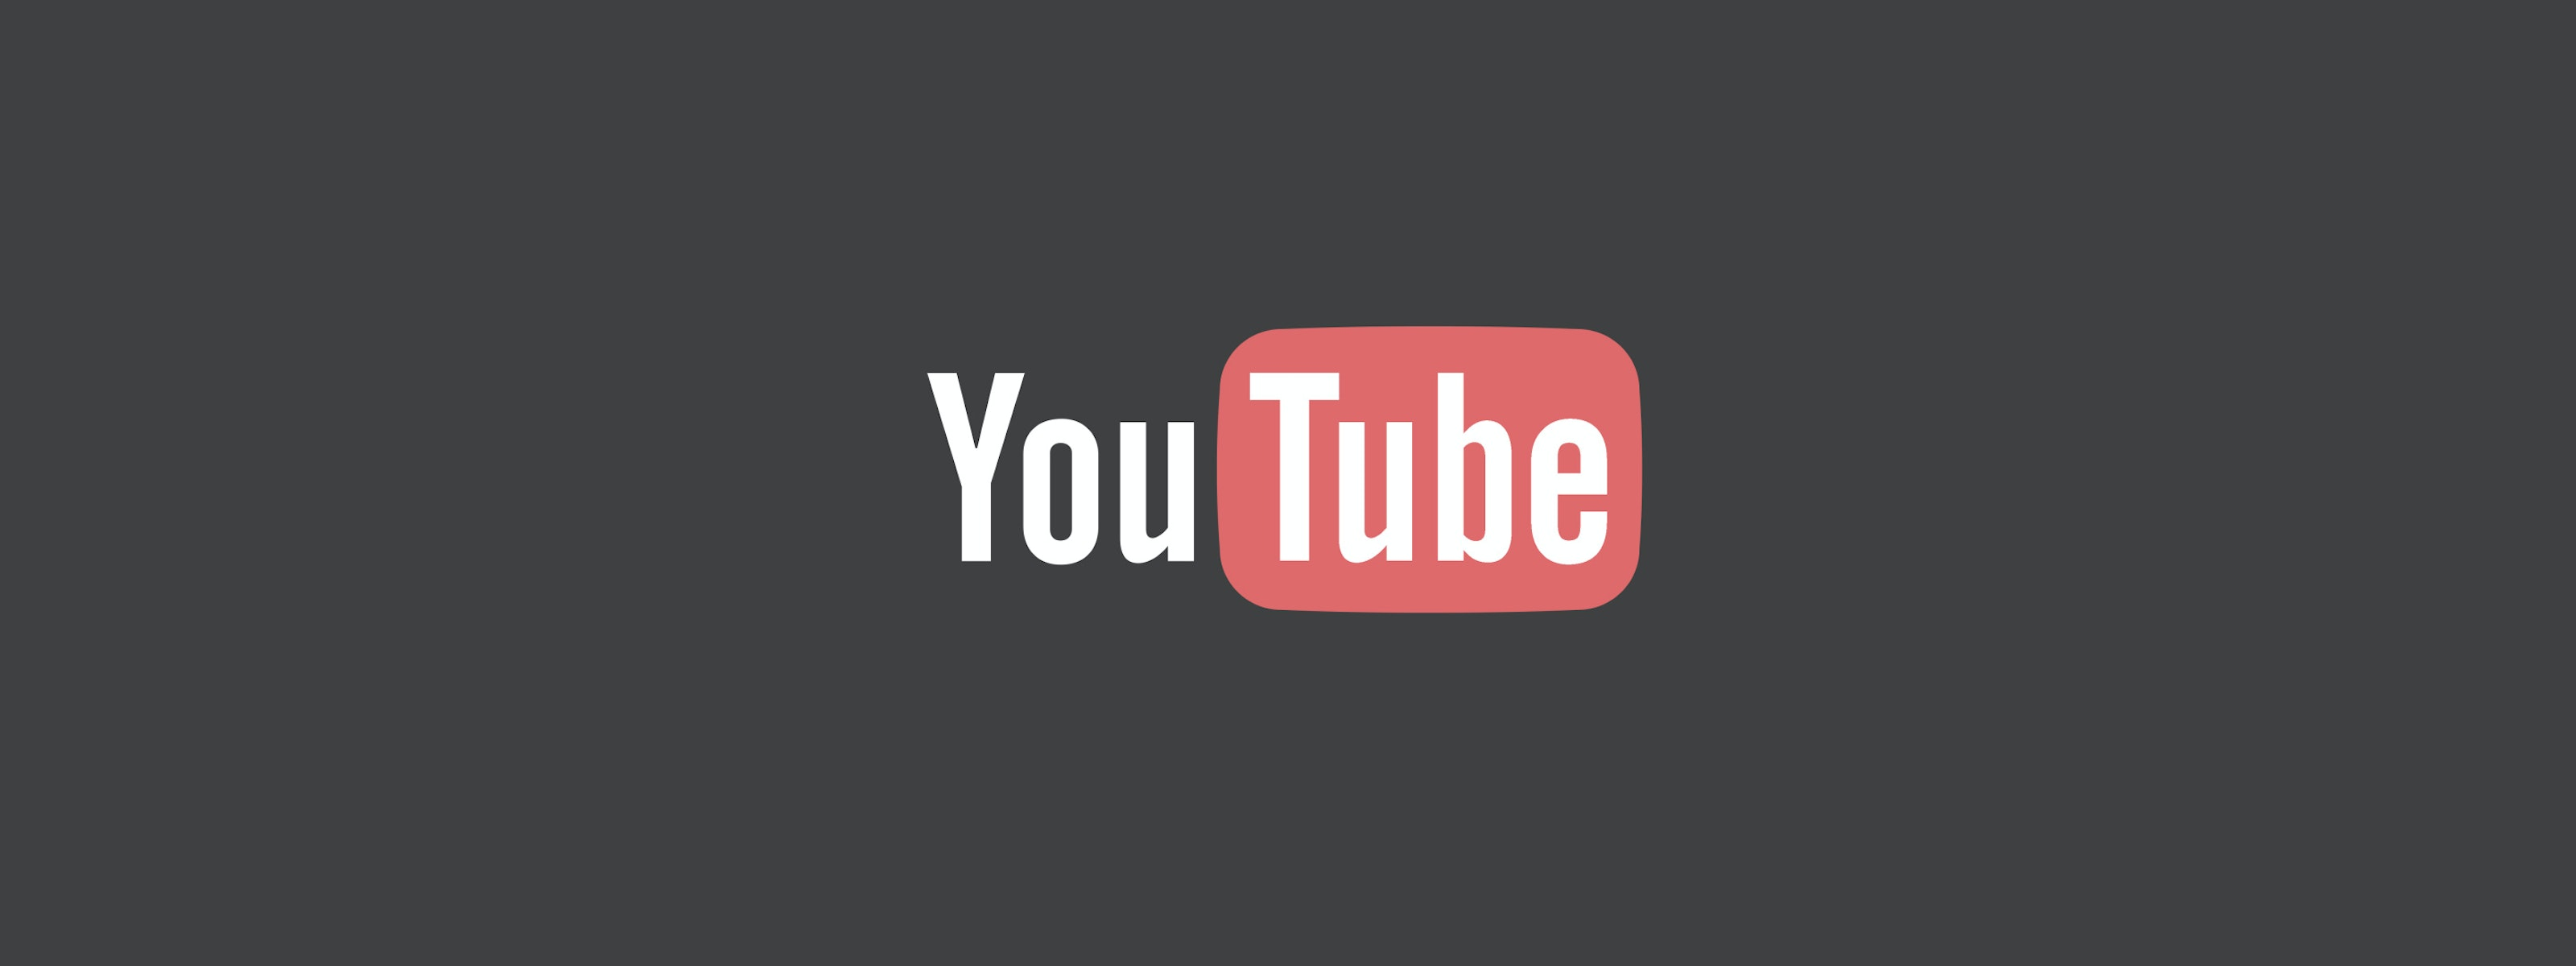 YouTube Video Uploading Best Practices | Motion Array